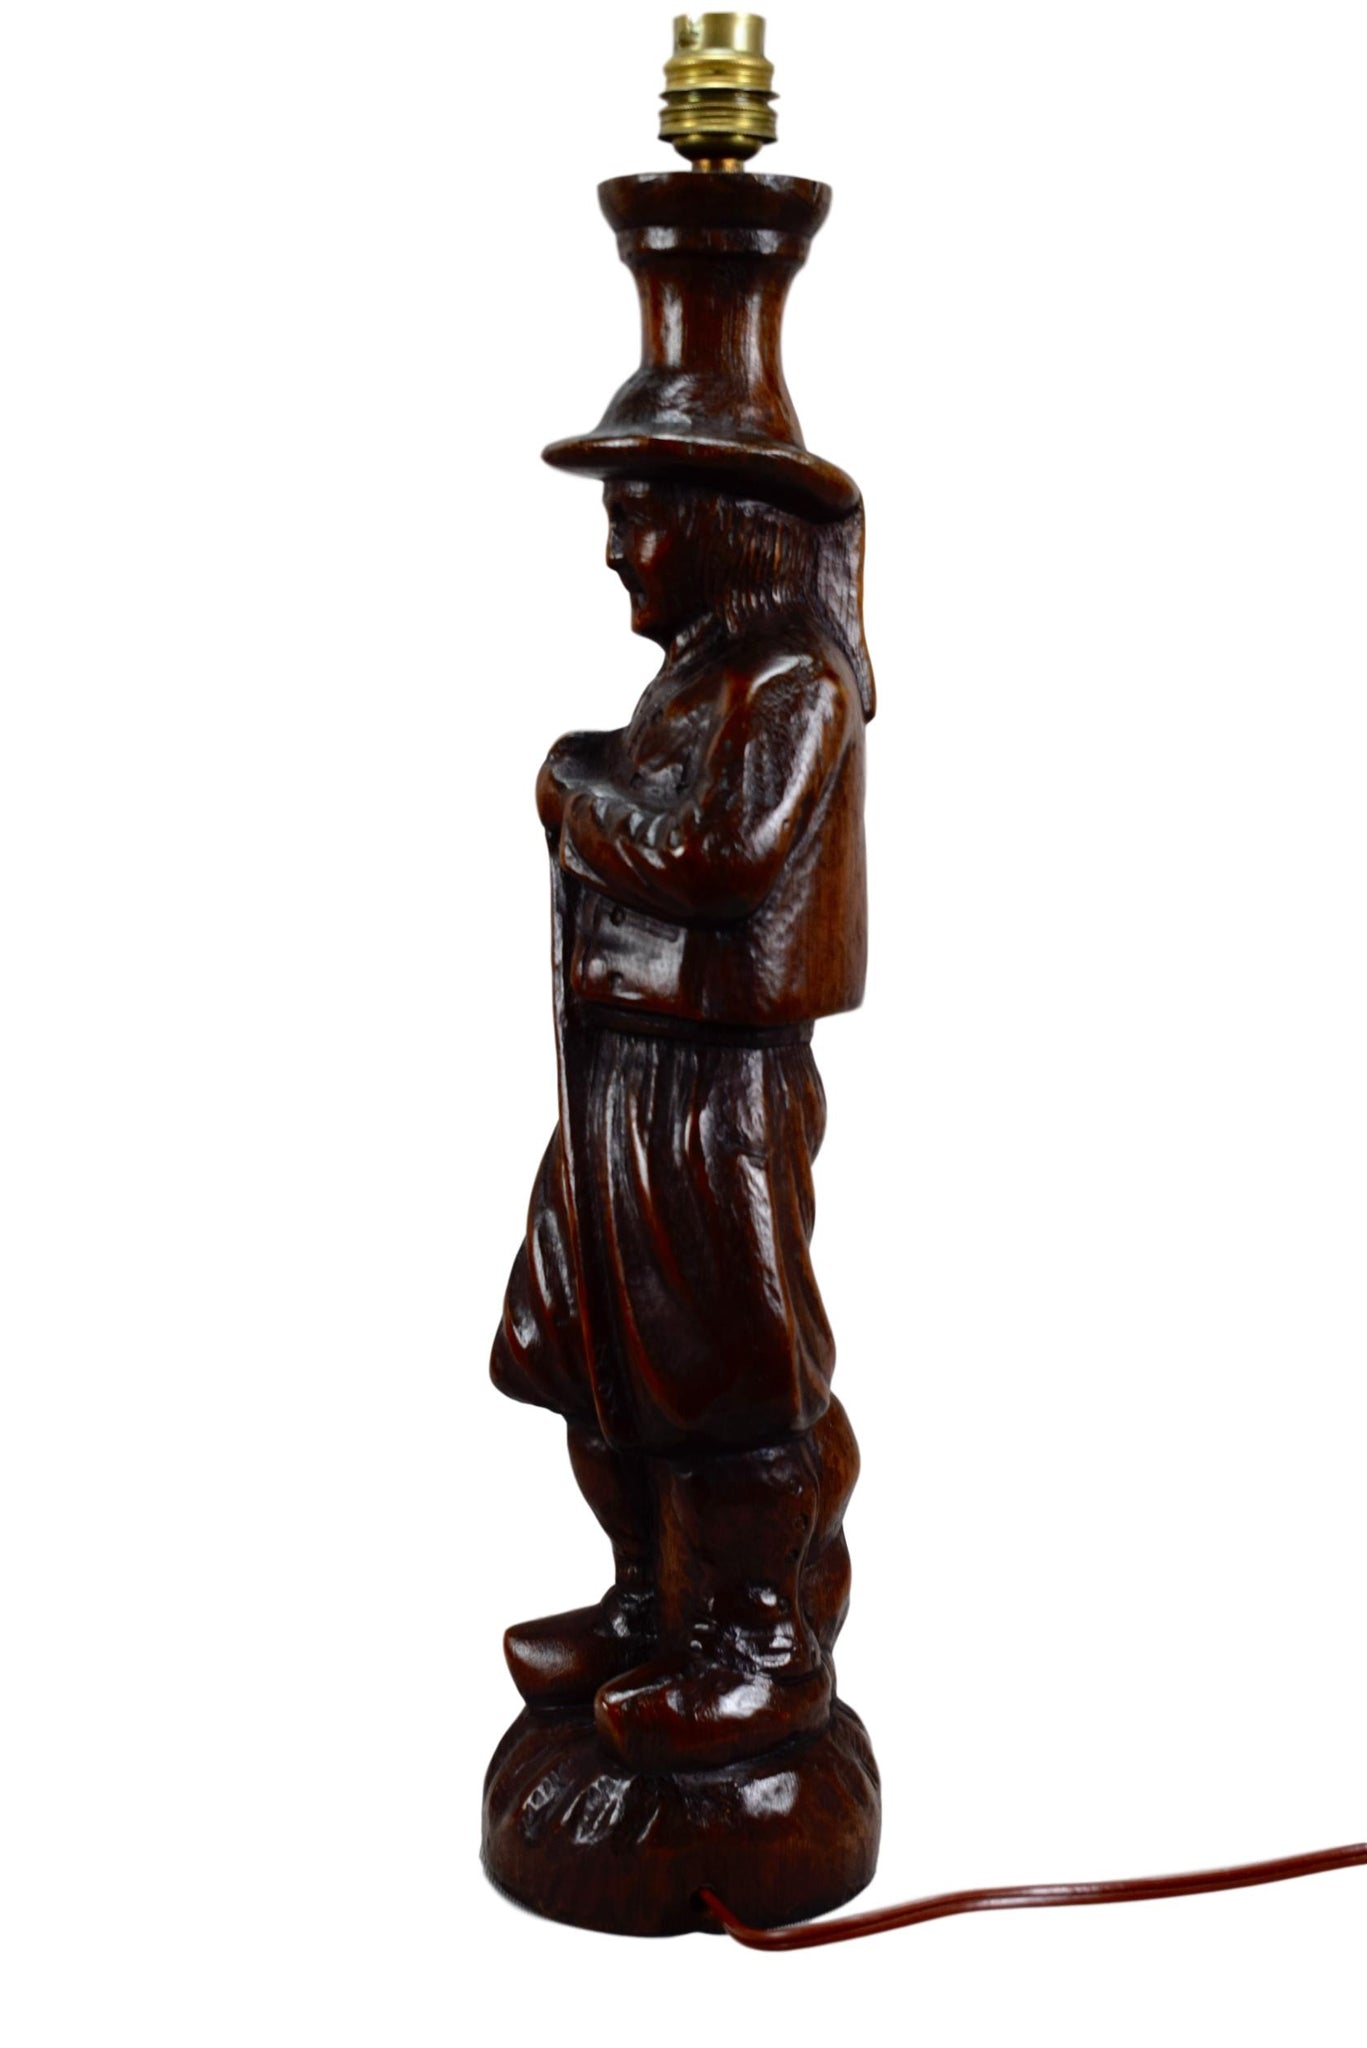 Antique French Large Breton Man Figure Hand Carved Wood Lamp - French Rustic Wooden Lamp Foot - Desk Lamp - French Rustic Farm